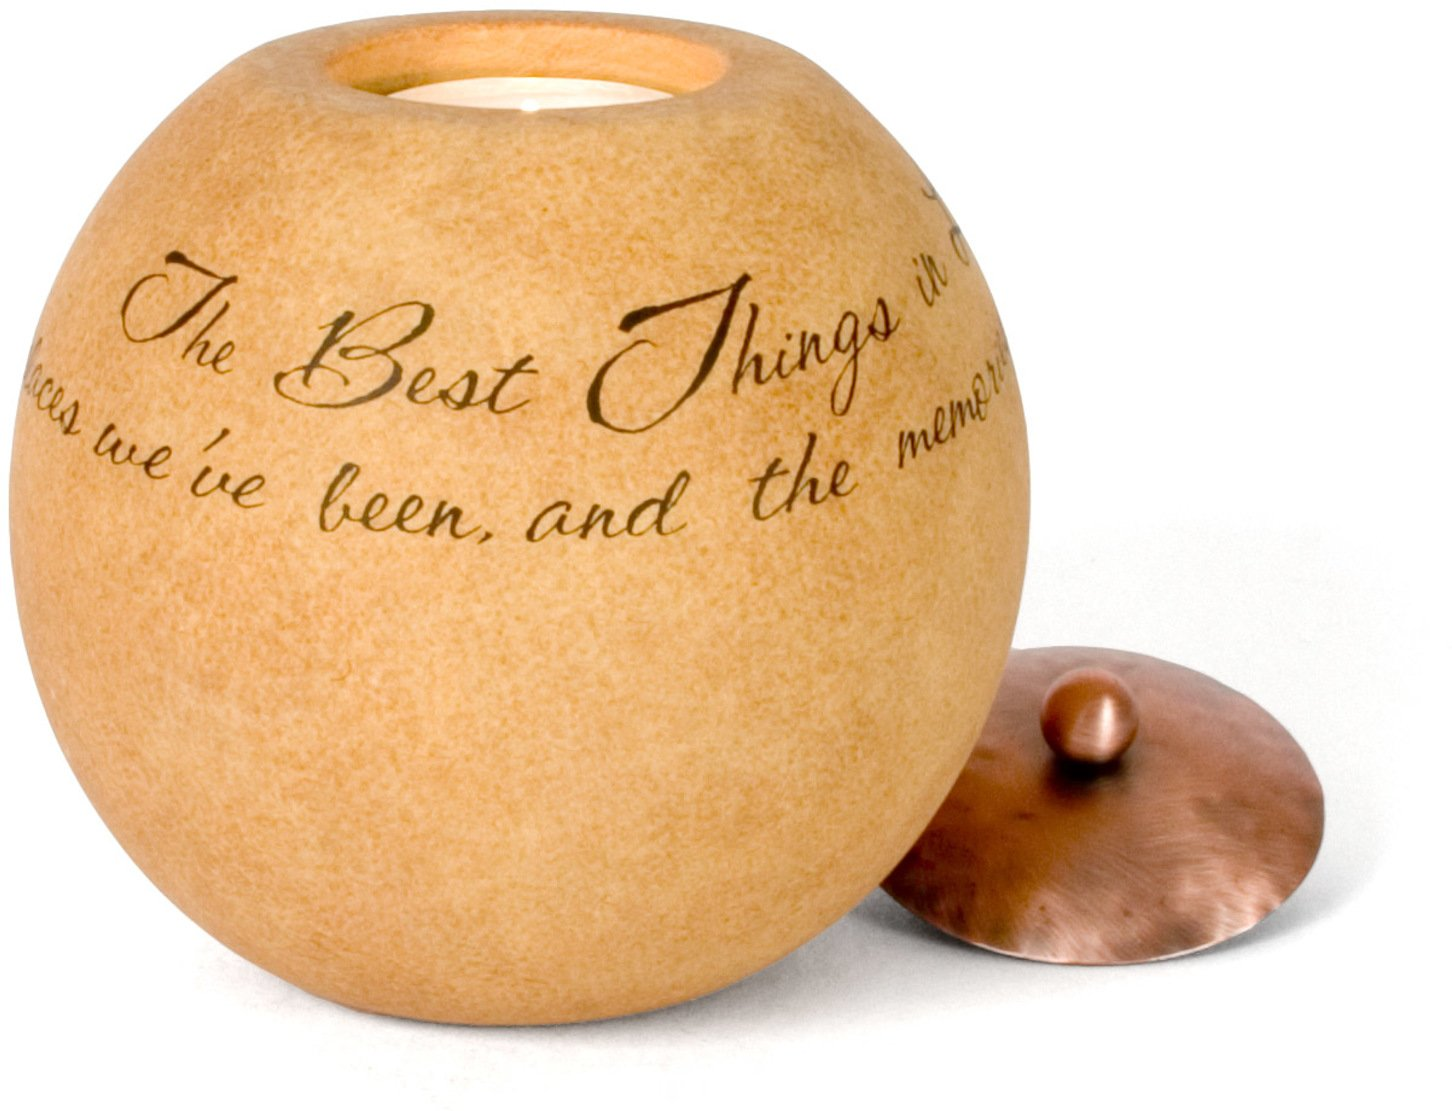 Comfort Candles The Best Things in Life by Pavilion Tea Light Candle, 4-1/2-Inch Round, Sentimental Saying Pavilion Gift Company 05675